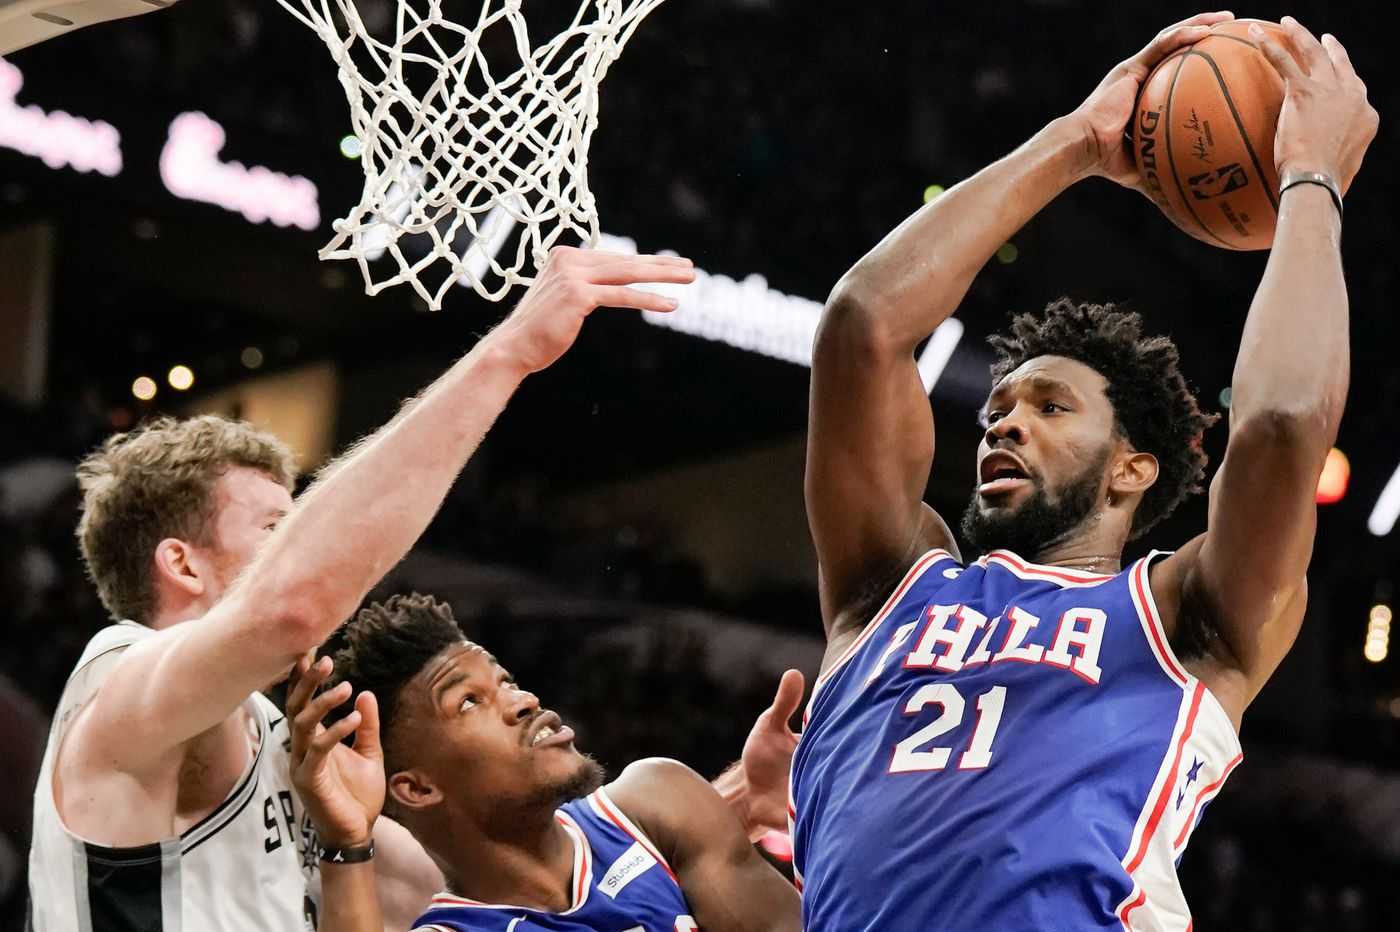 Jimmy Butler, Joel Embiid listed as questionable for Sixers' game against New York Knicks